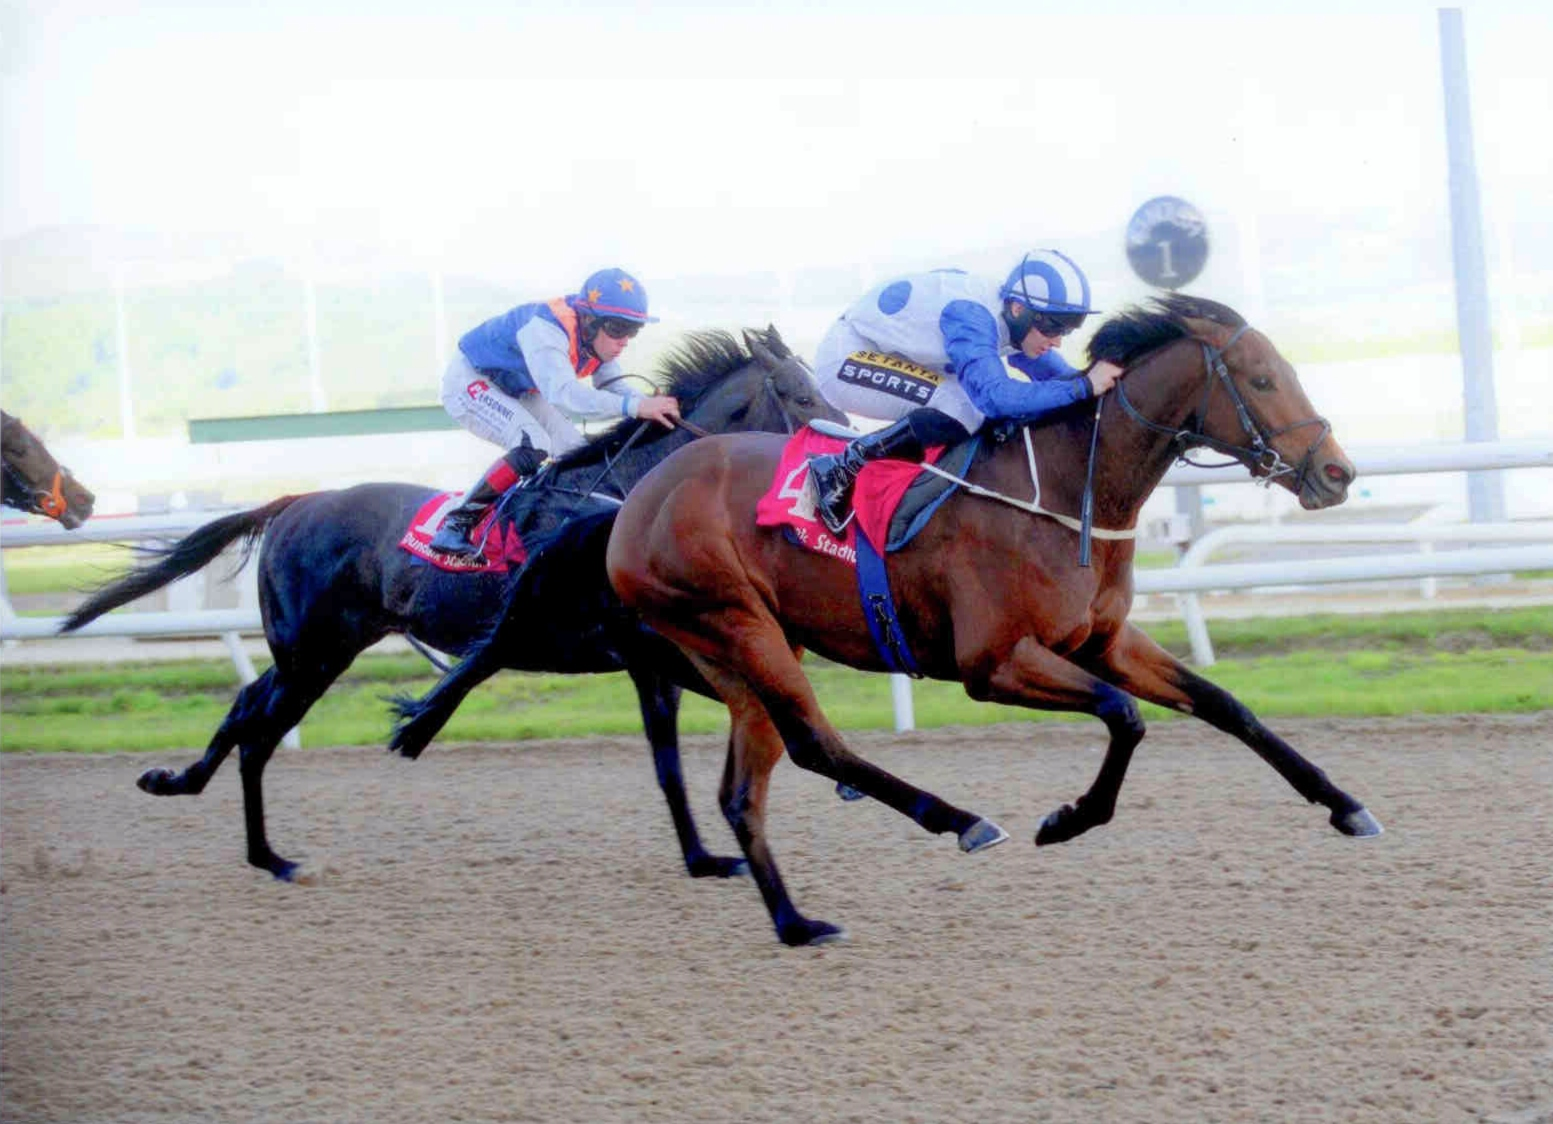 CAPE WOLFE provides Ger and Colin with a double at Dundalk on May 19th, 2015